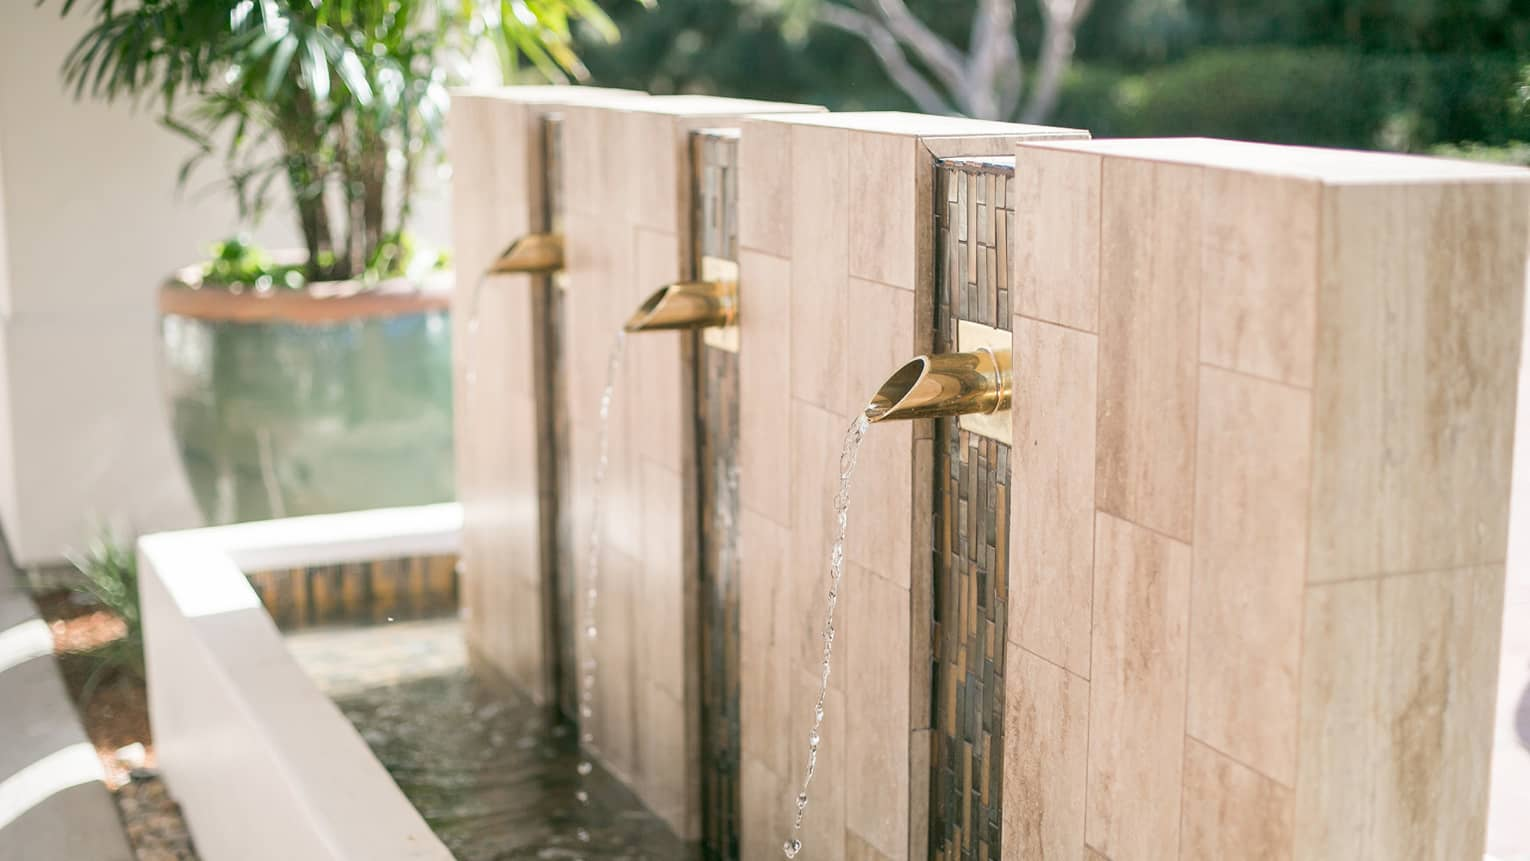 Water falls from brass spouts of marble outdoor fountain